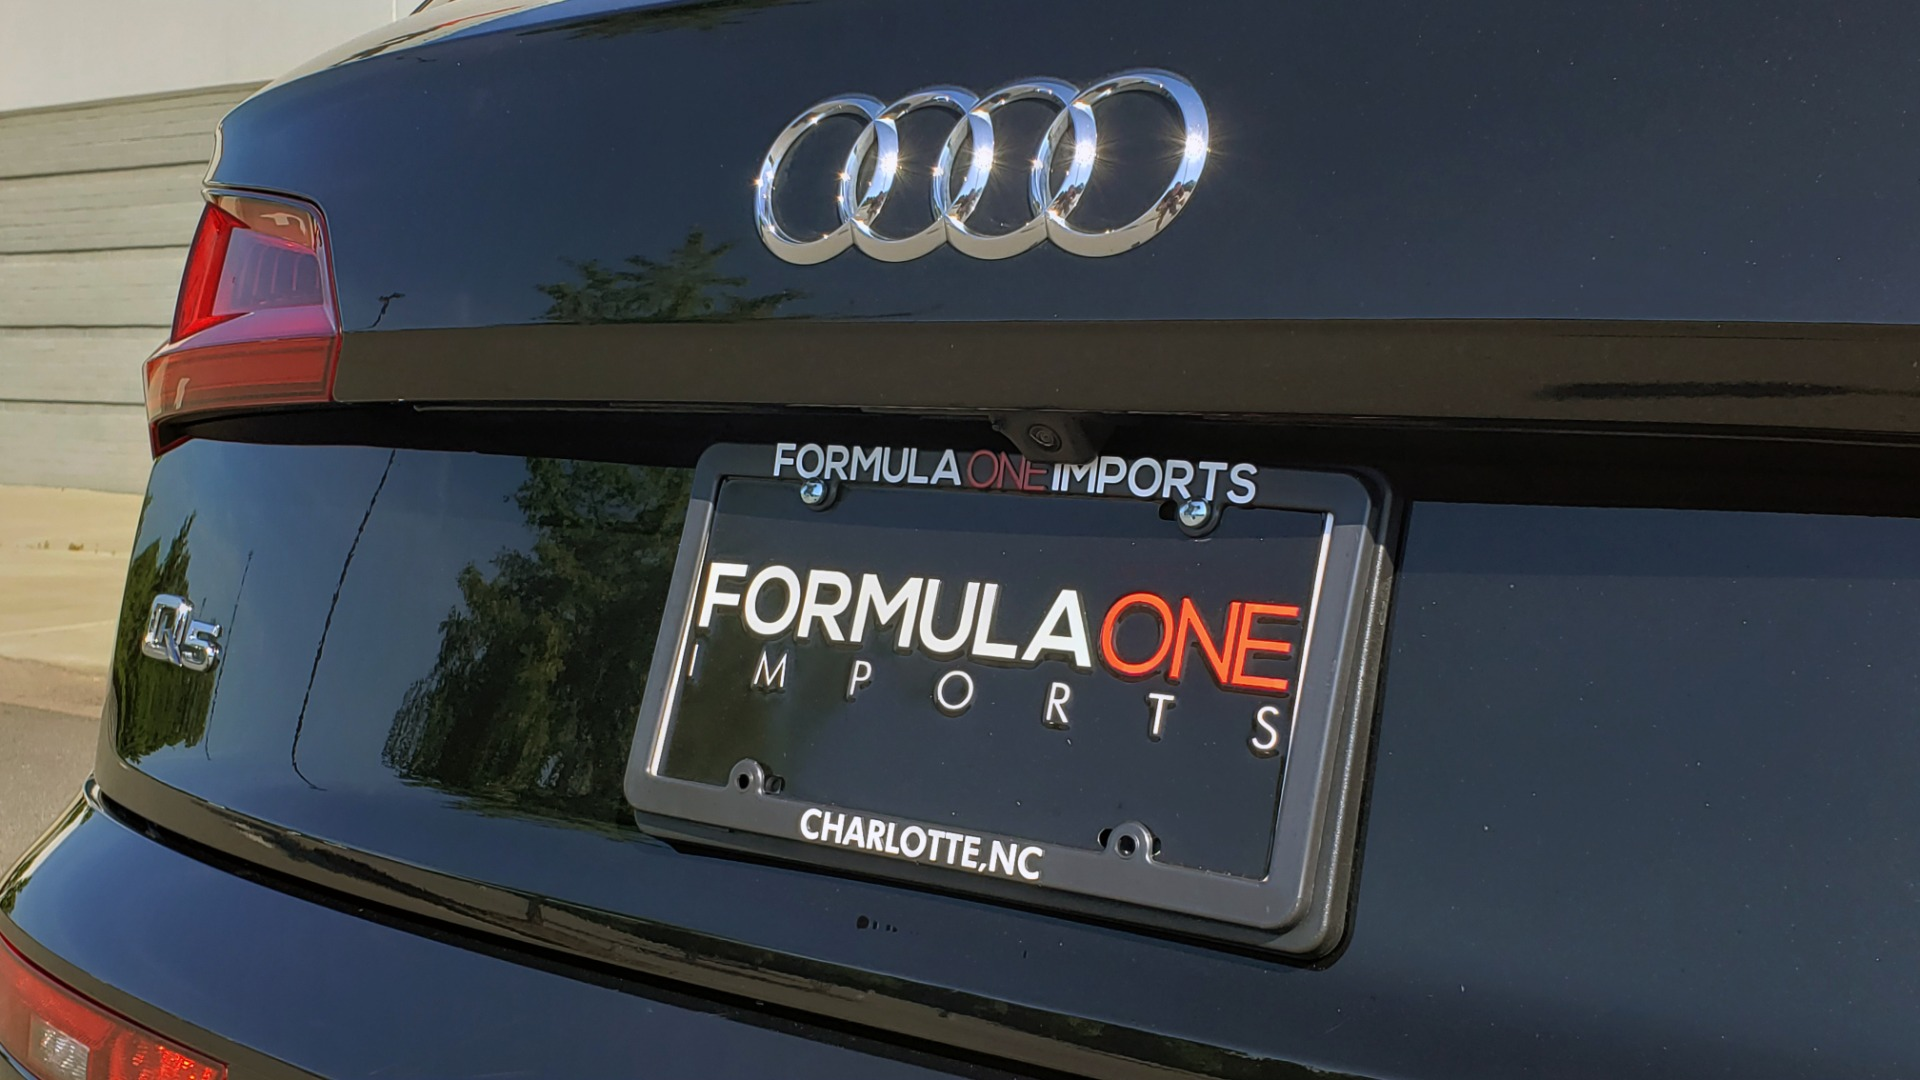 Used 2018 Audi Q5 PREMIUM PLUS / NAV / B&O SND / CLD WTHR / SUNROOF / REARVIEW for sale Sold at Formula Imports in Charlotte NC 28227 30